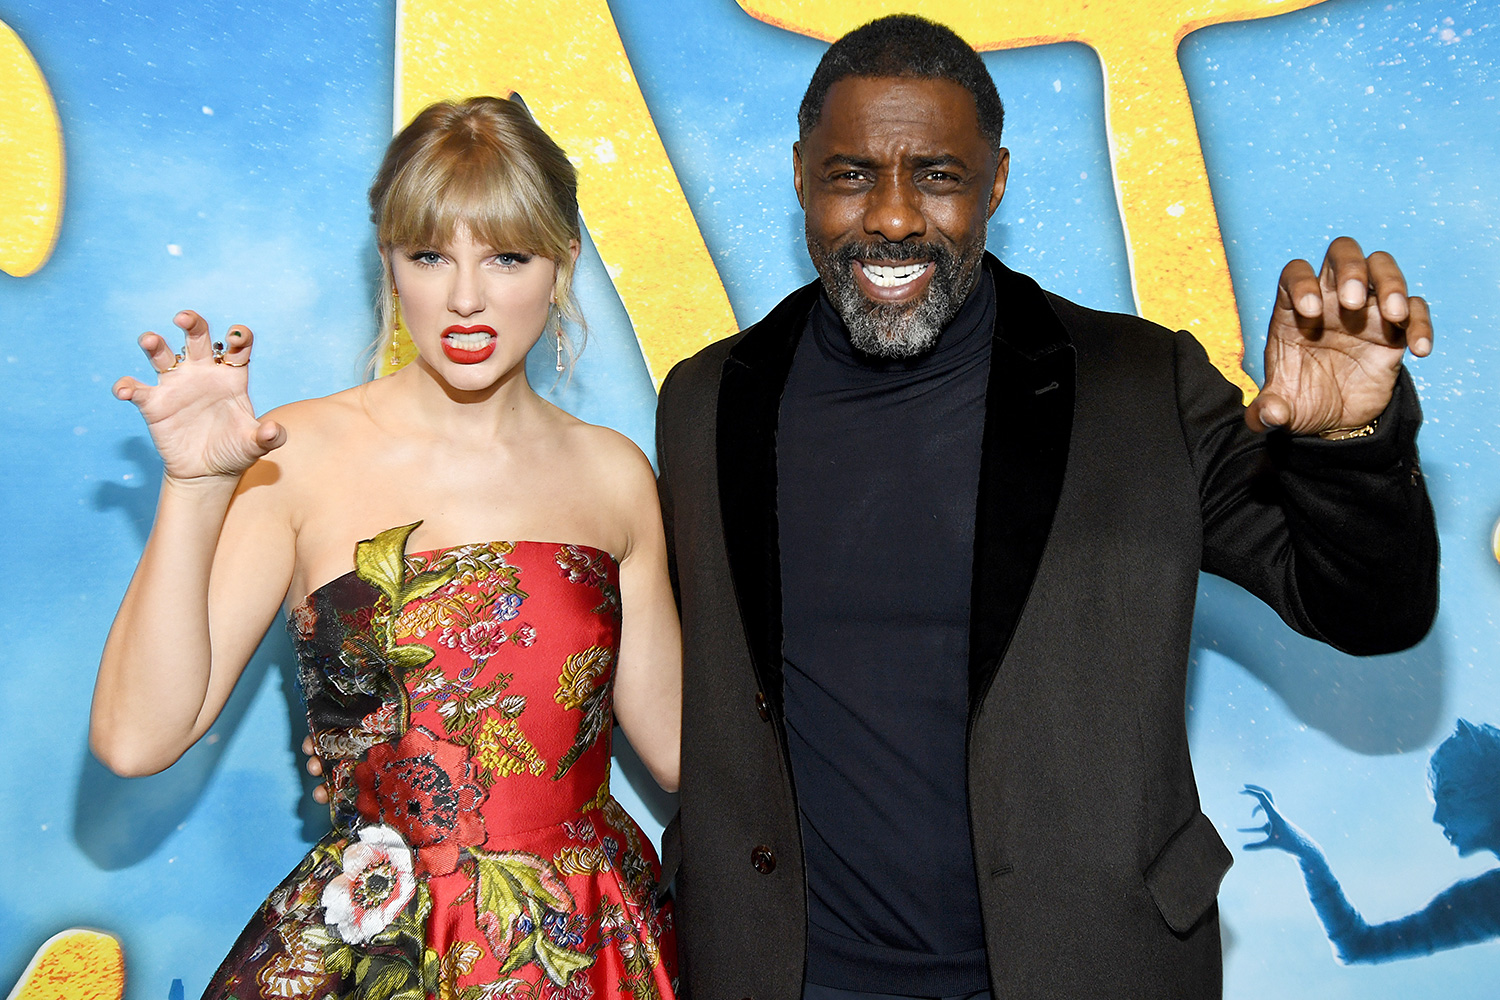 Taylor Swift and Idris Elba attend The World Premiere of Cats, presented by Universal Pictures on December 16, 2019 in New York City